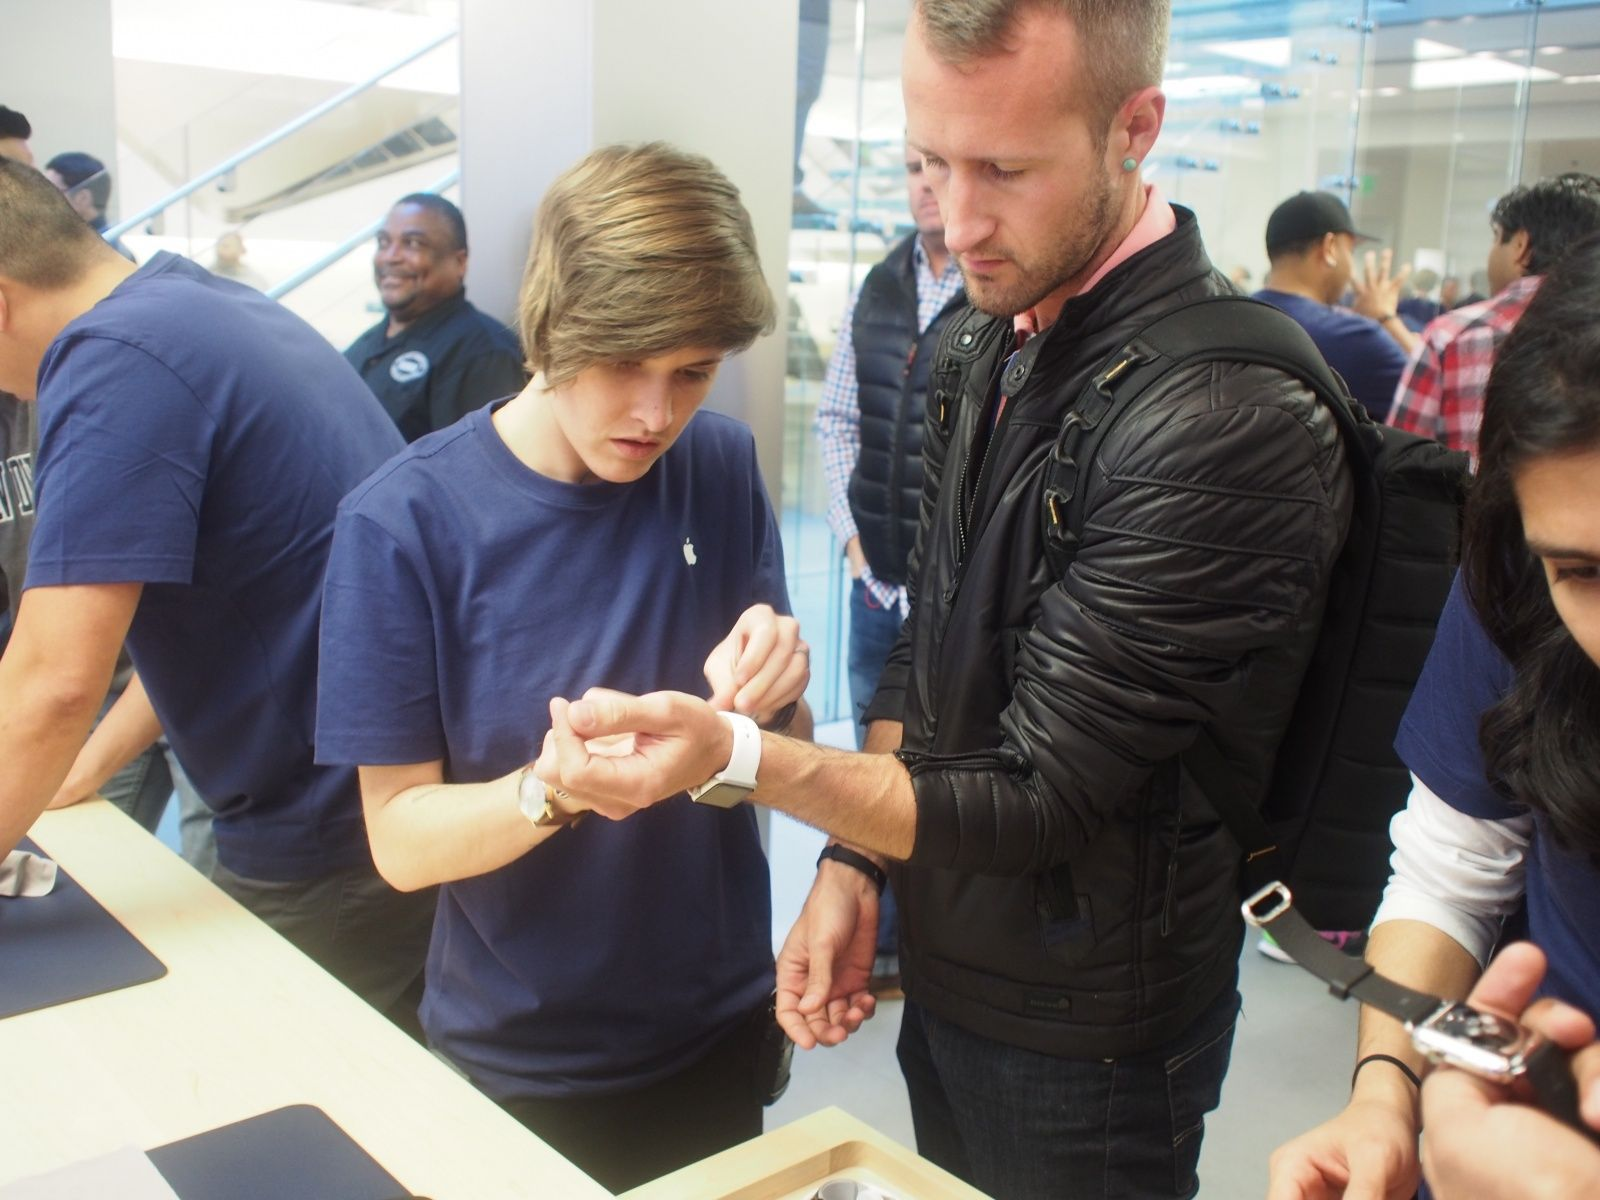 04_10_2015_Apple_Store_Watch_Express_preview_try_ons-1-1